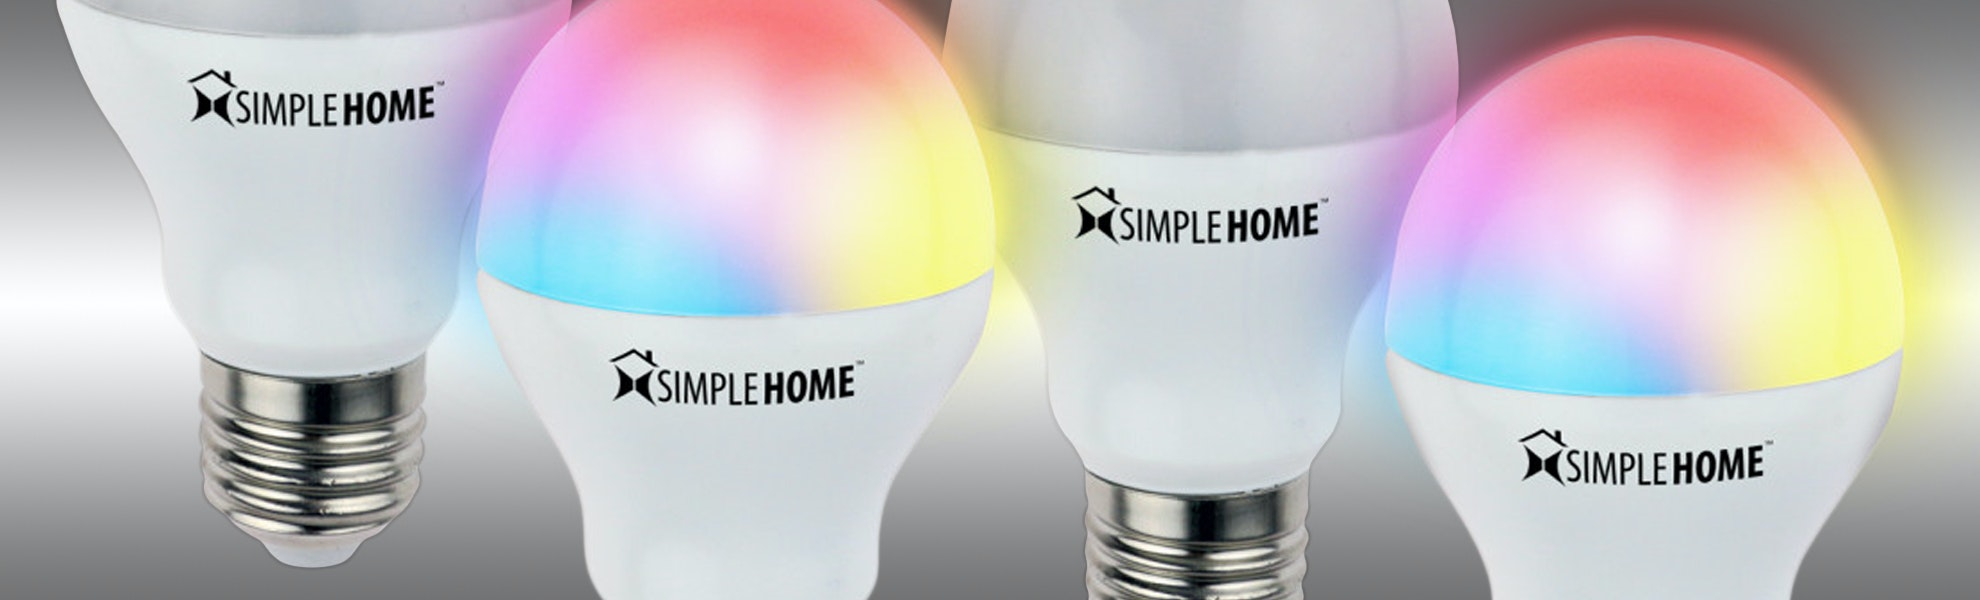 Simple Home Wi-Fi Smart LED Light Bulb